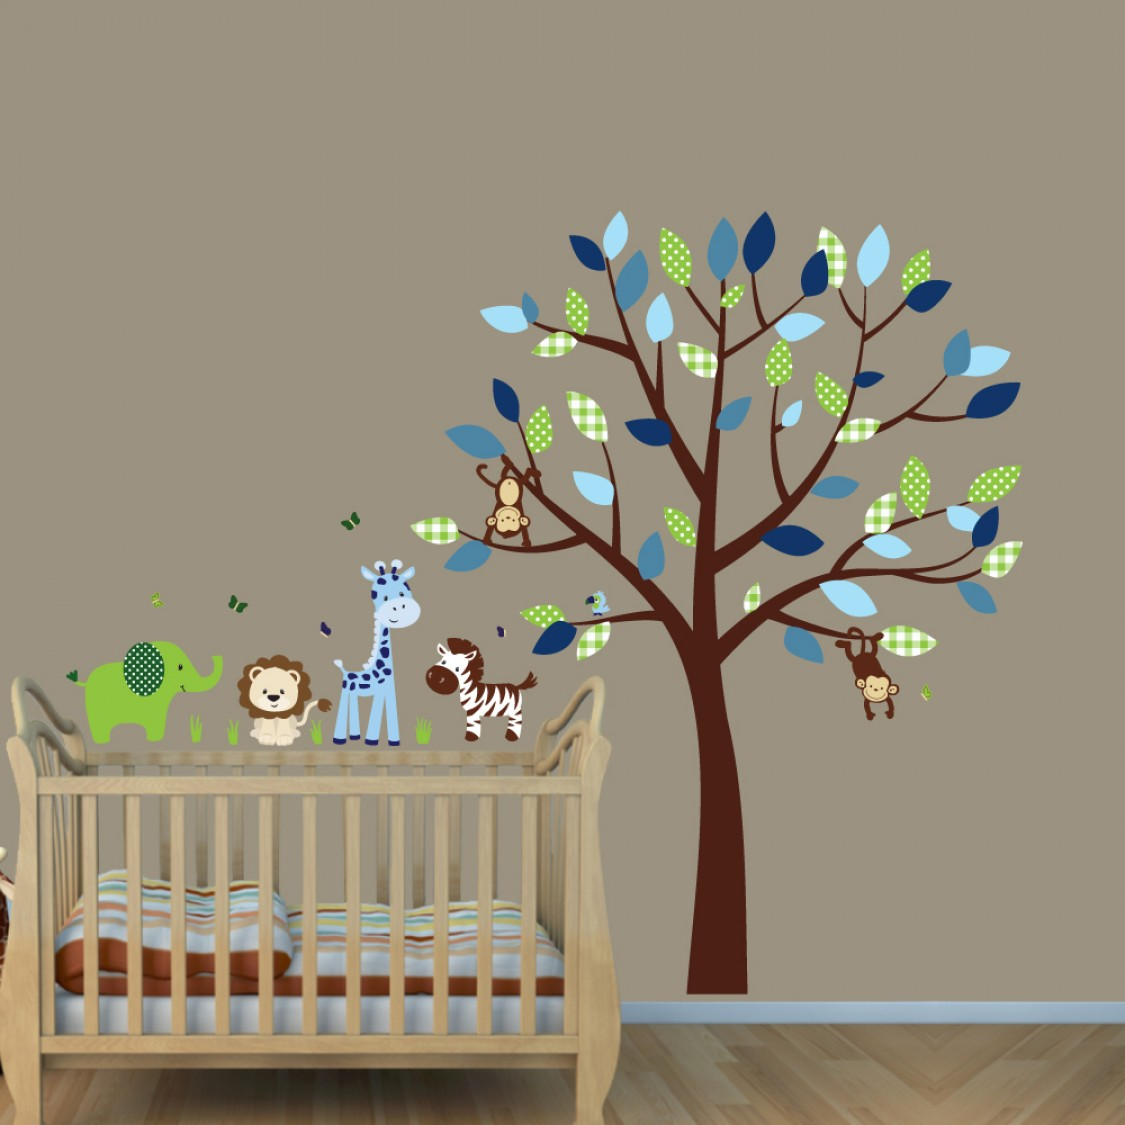 Green & Blue Jungle Tree Wall Decals With Giraffe Decals For Boys Rooms